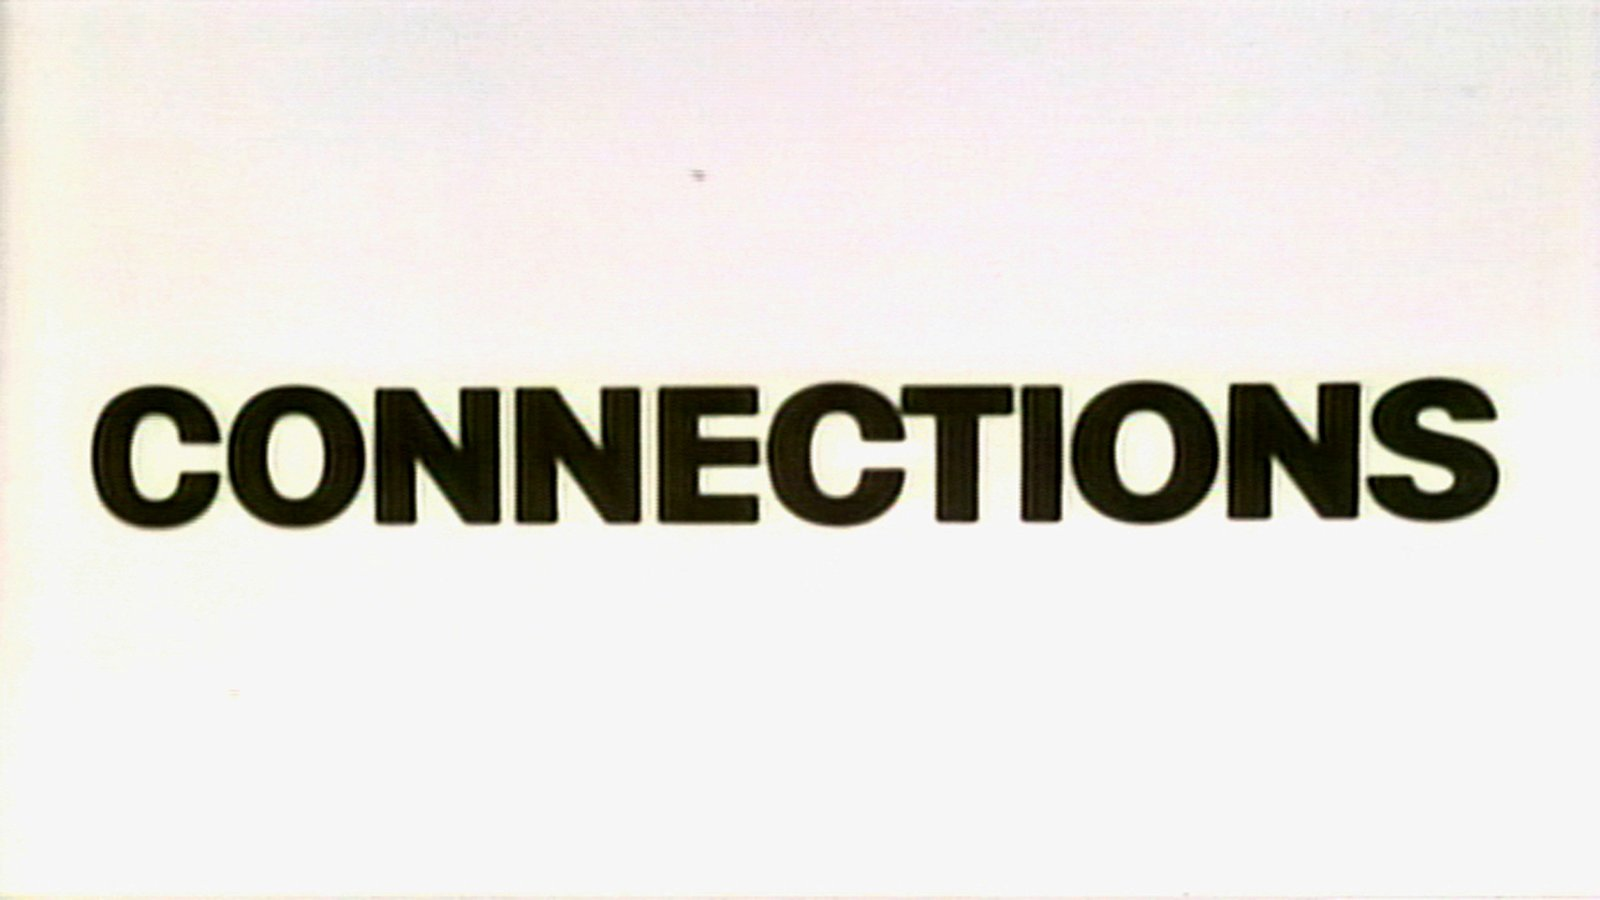 Connections - An Alternative View of Change